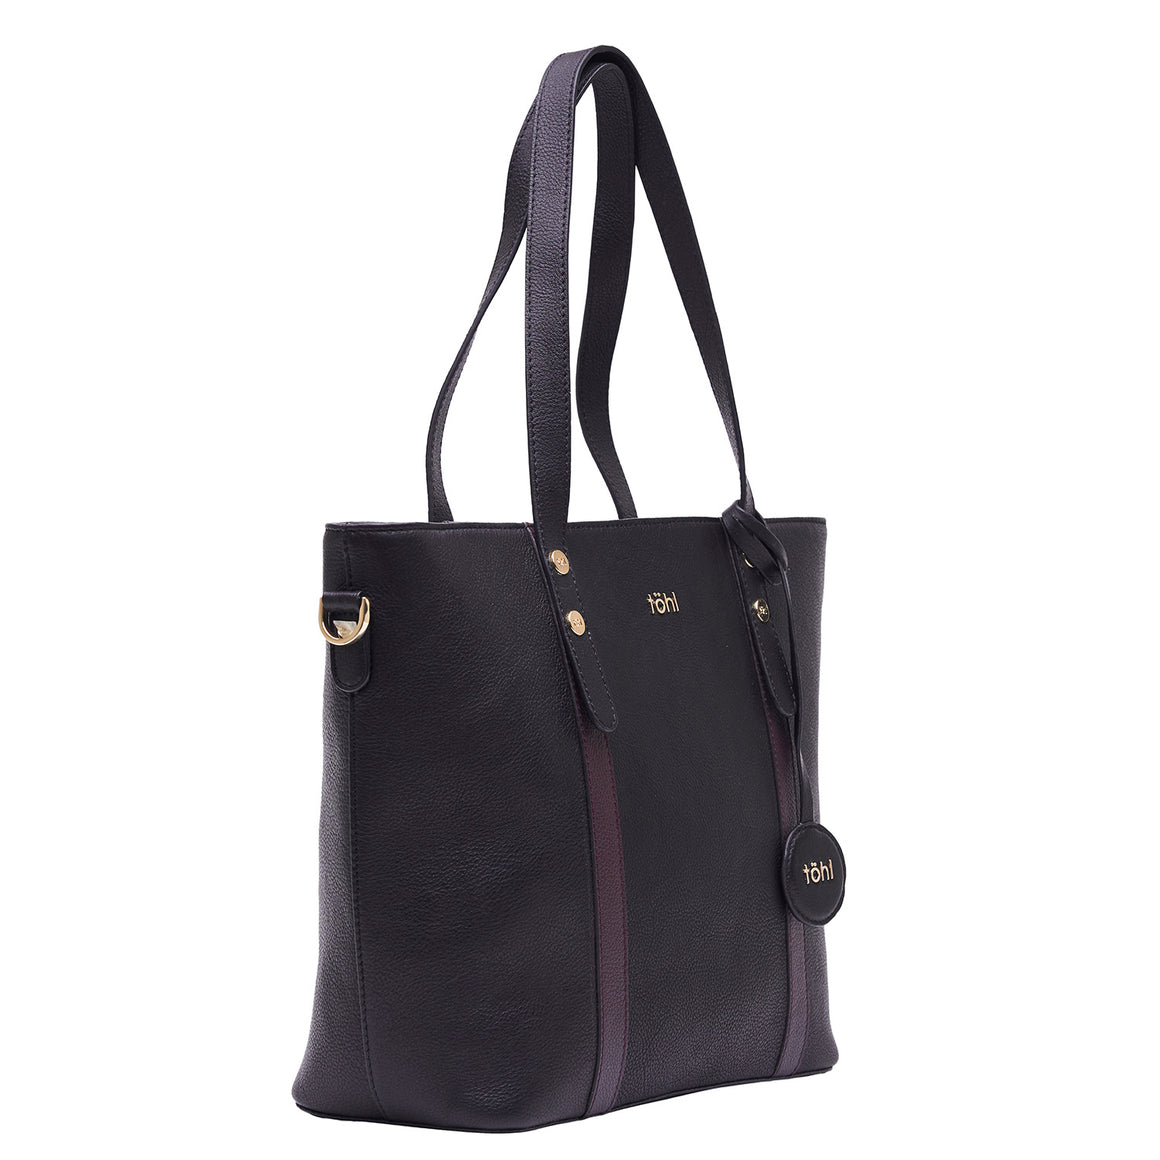 TT 0015 - TOHL DORRI WOMEN'S TOTE BAG - CHARCOAL BLACK